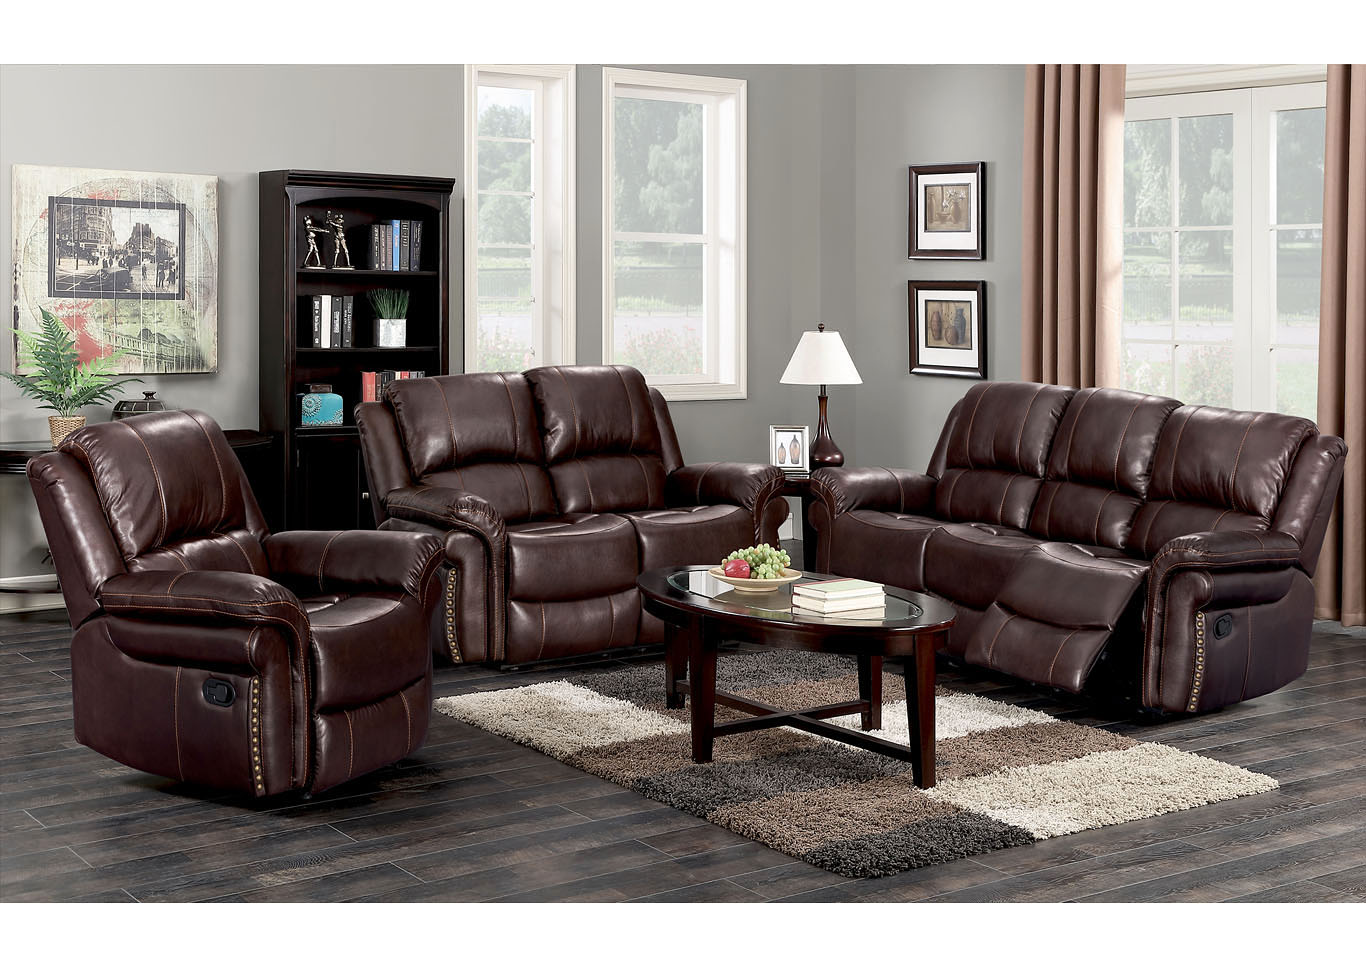 Dark Brown Sofa , Loveseat & Recliner,Global Trading